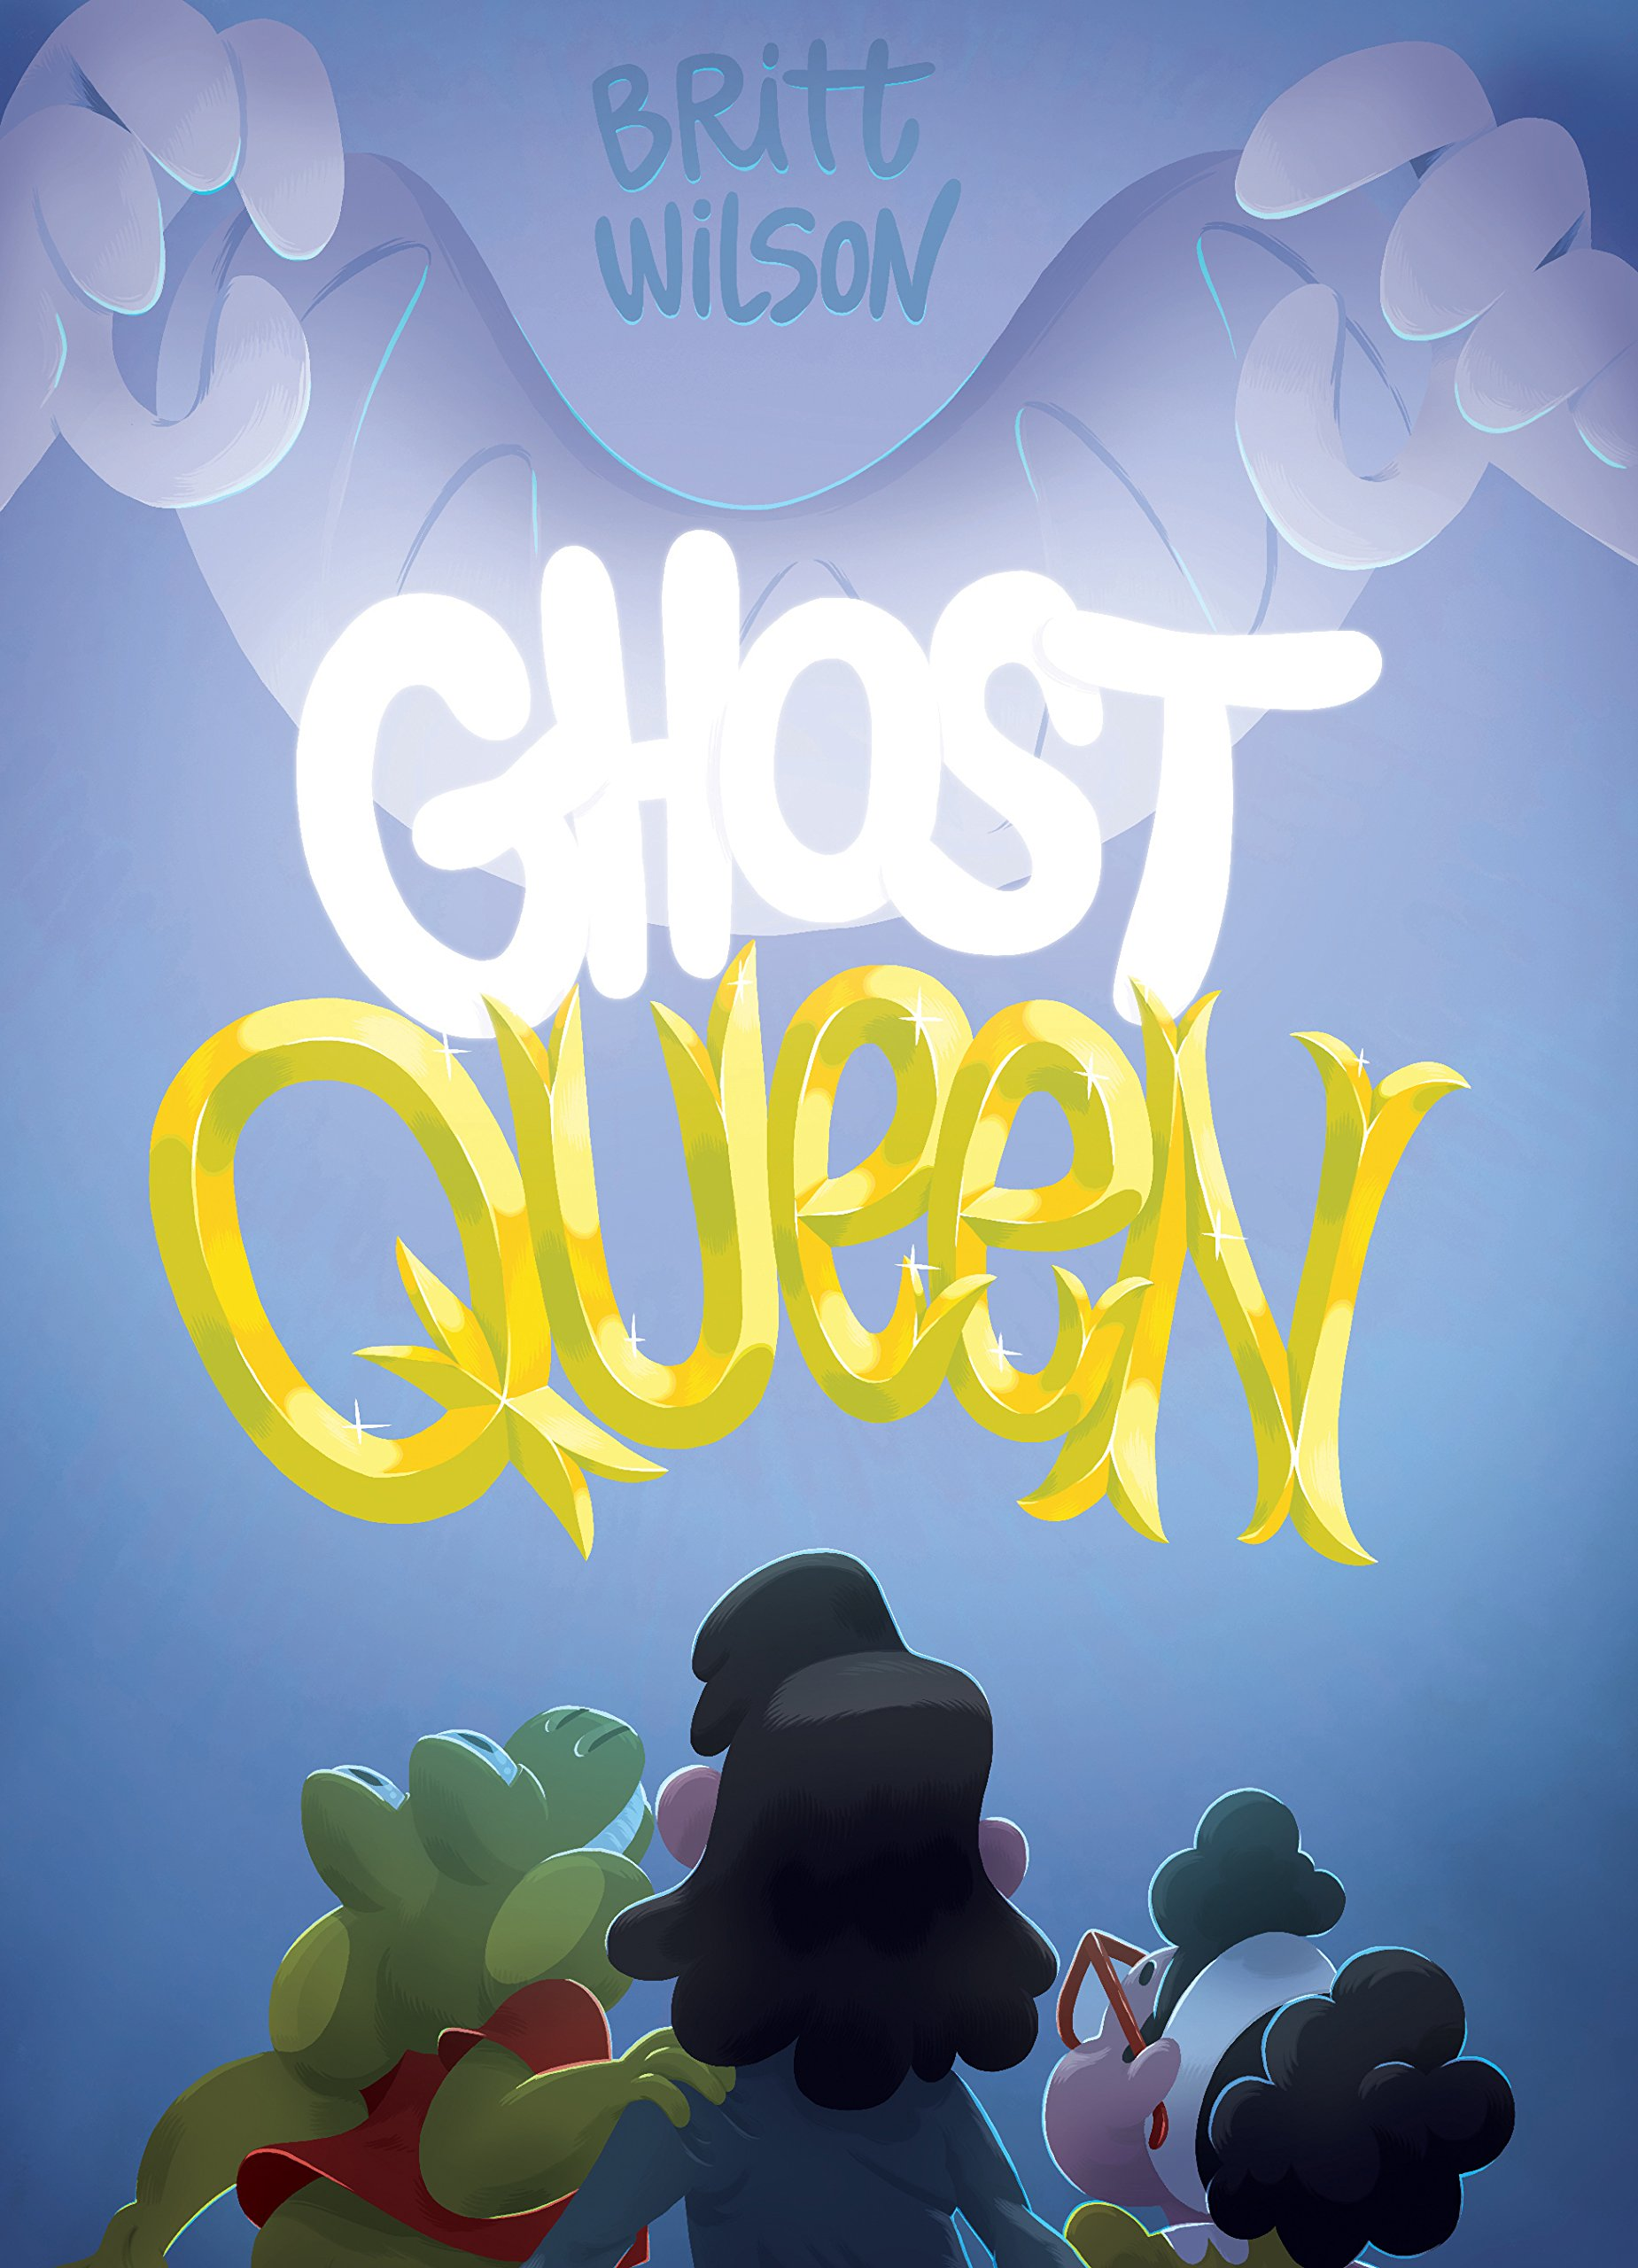 - GHOST QUEEN(Koyama Press, Sept 2018)Luey, Miri and Phil don't need a babysitter, but they might need an exorcist. With dad out of town and mom hosting an emergency yoga retreat everything was junk food and scary movies until the ghosts popped up. Now it's up to the kids to banish the banshees. Britt Wilson presents another rollicking romp in this fun-filled phantasmagorical fantasy.